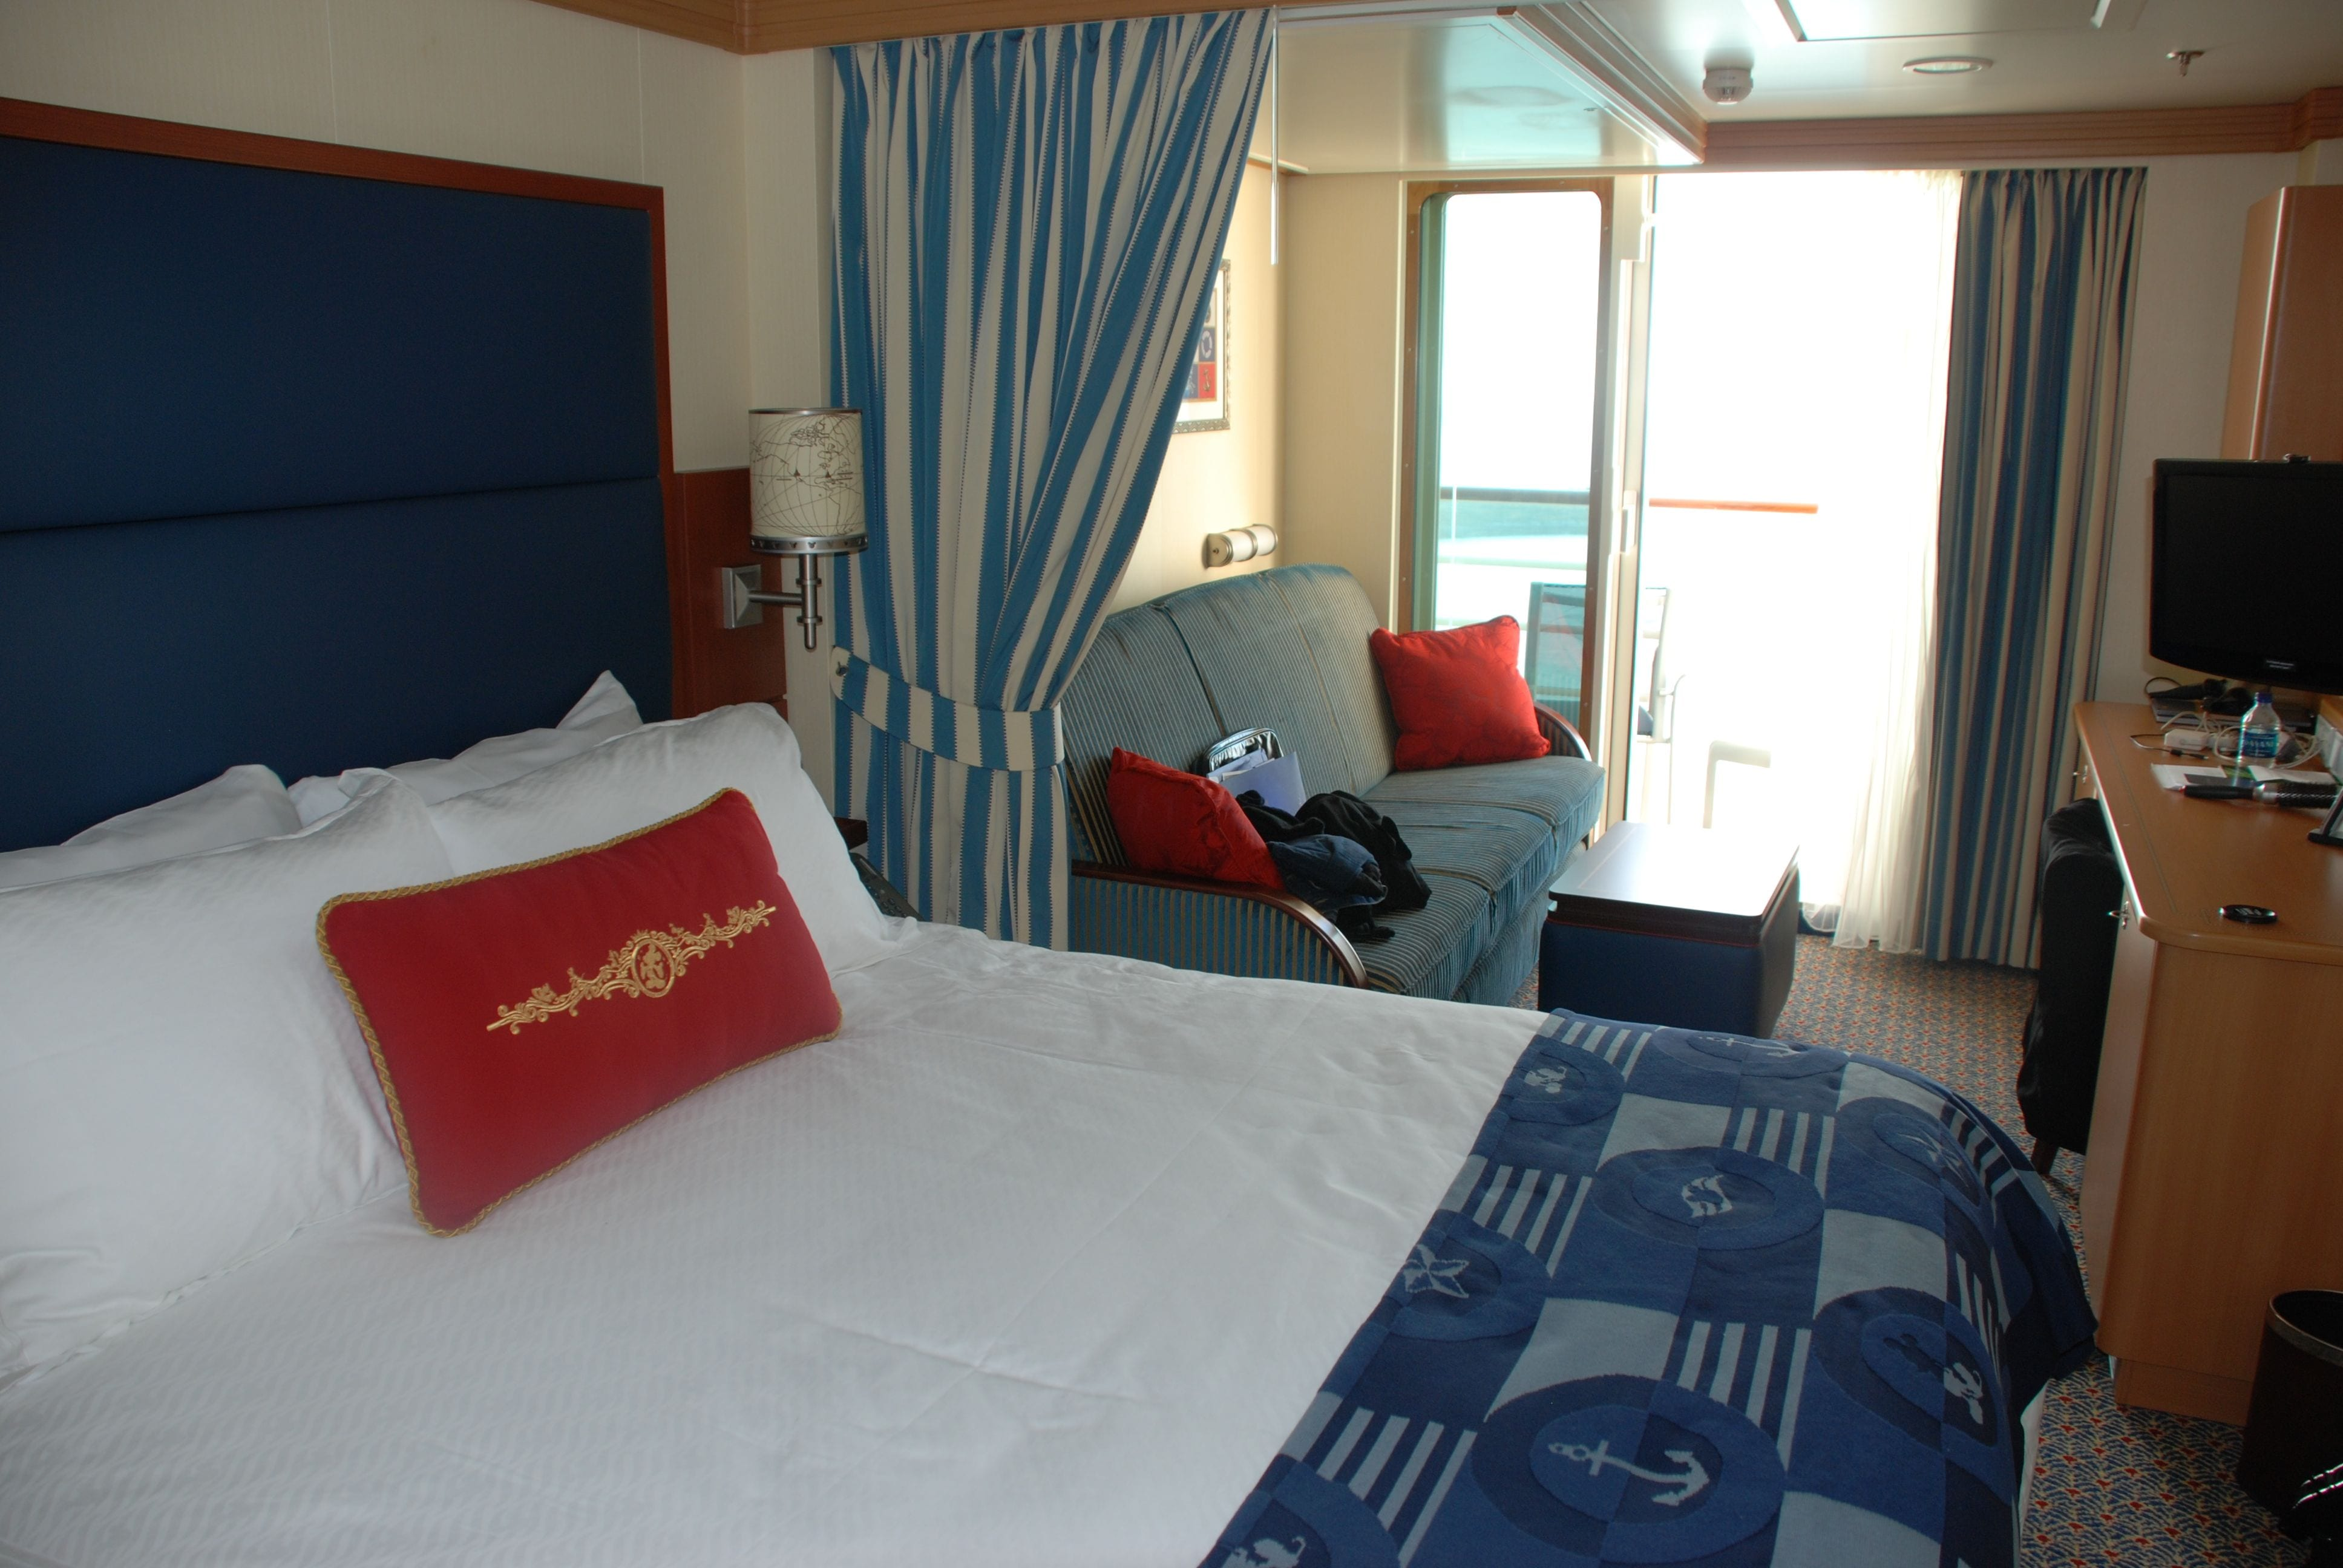 Staterooms On The Disney Dream